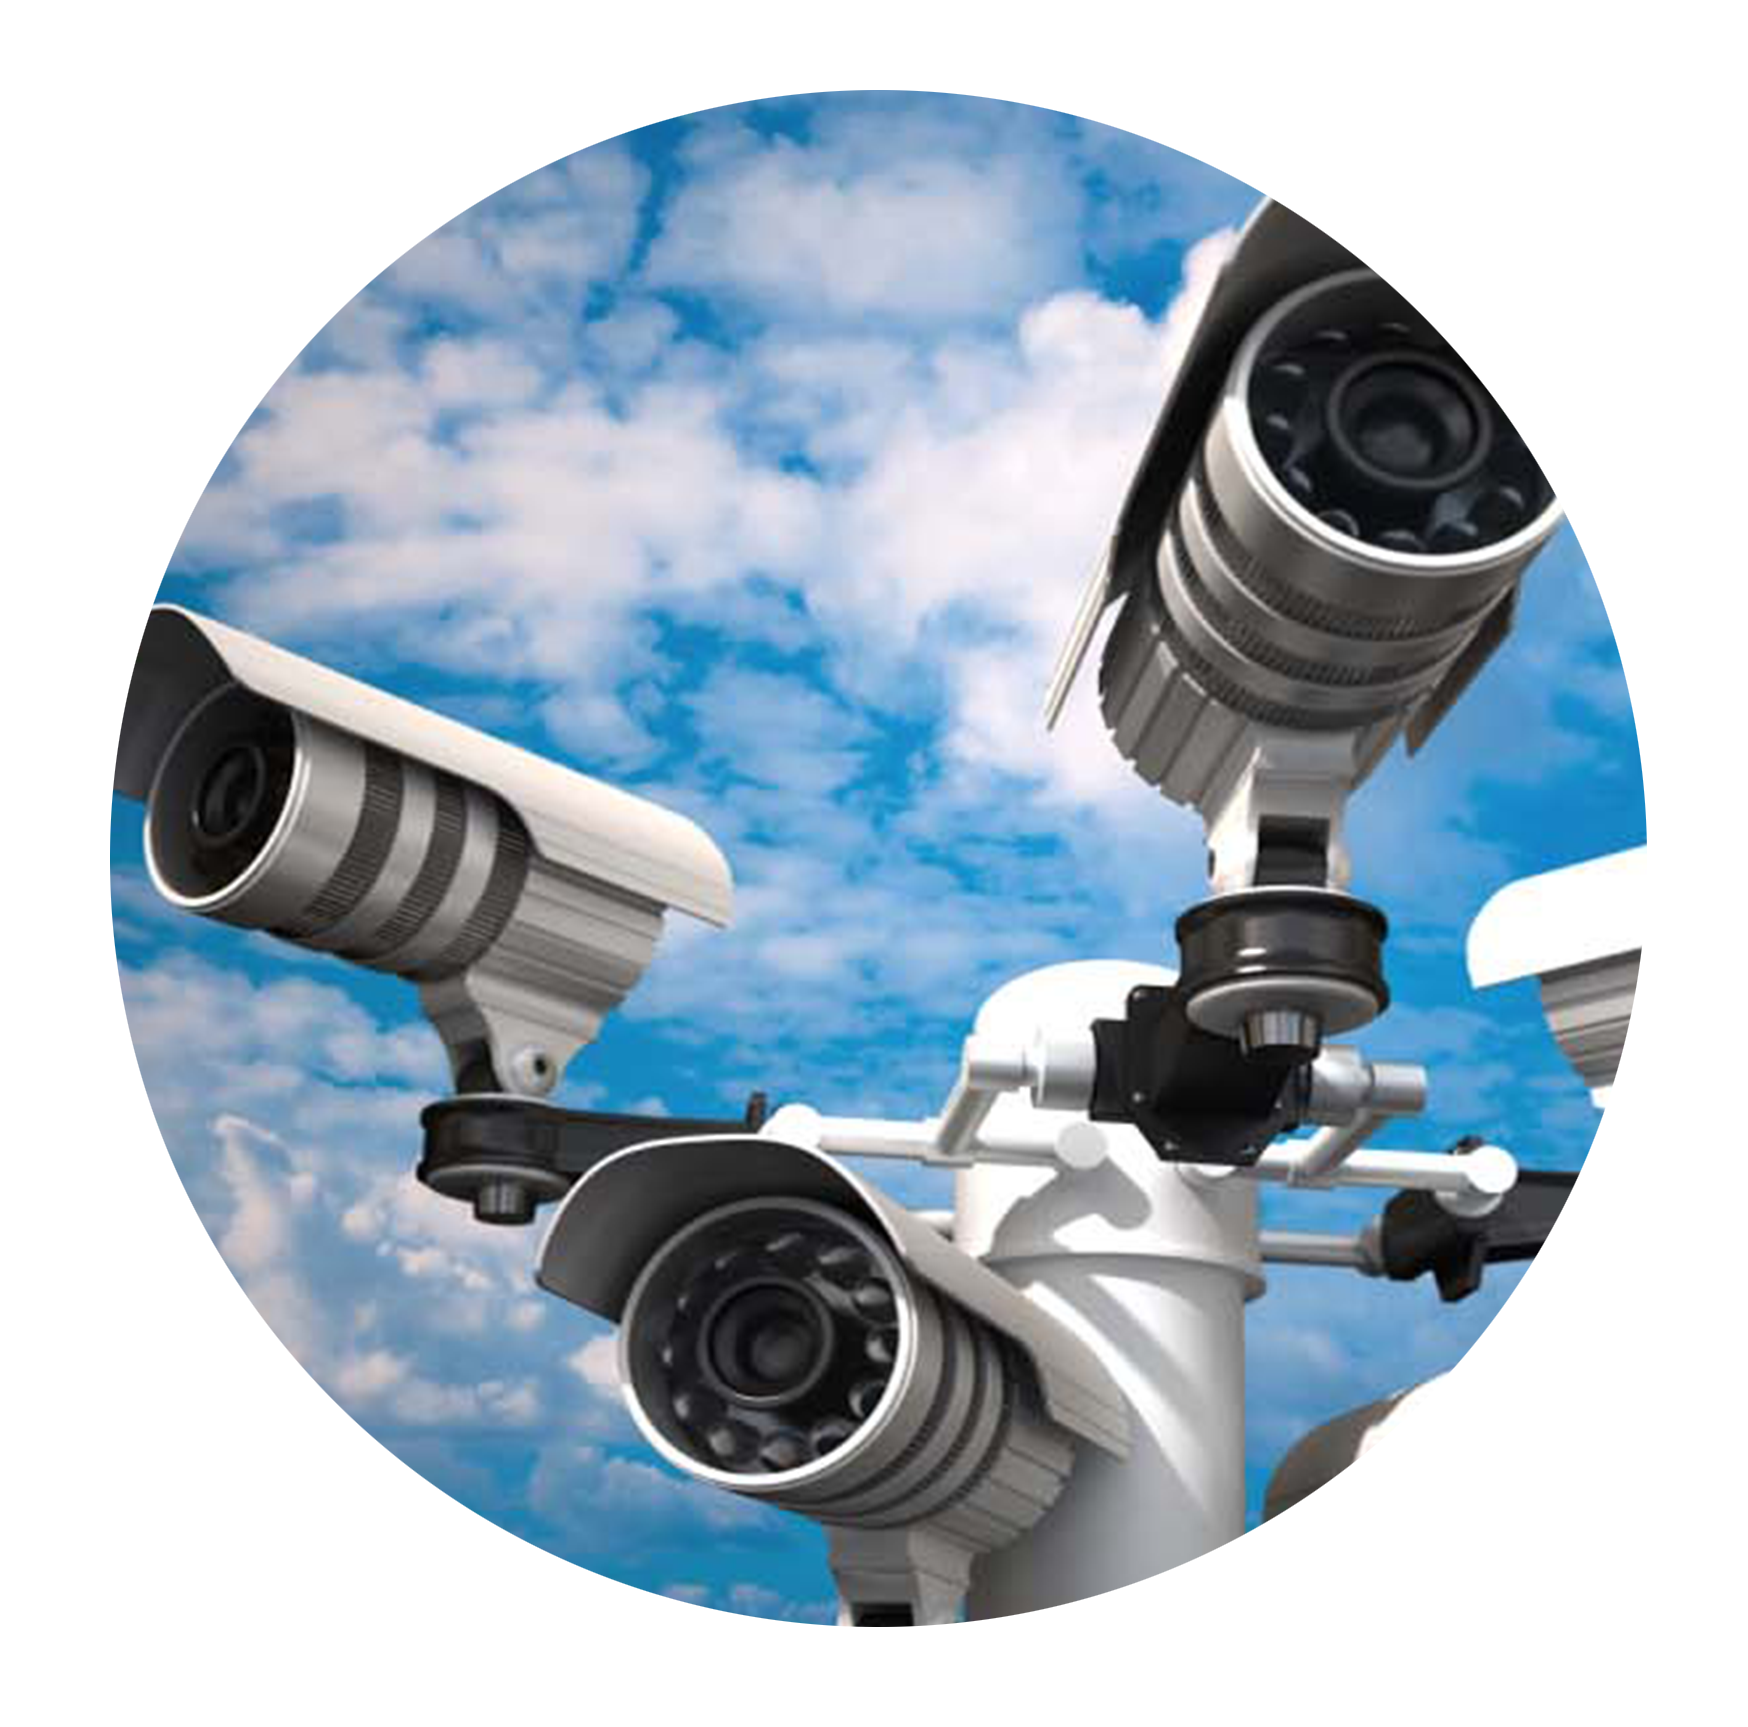 Closed Circuit Television (CCTV) Systems - A complete design and installation package for all CCTV system types from single point cameras to large scale multi camera multi-site network systems with remote monitoring.